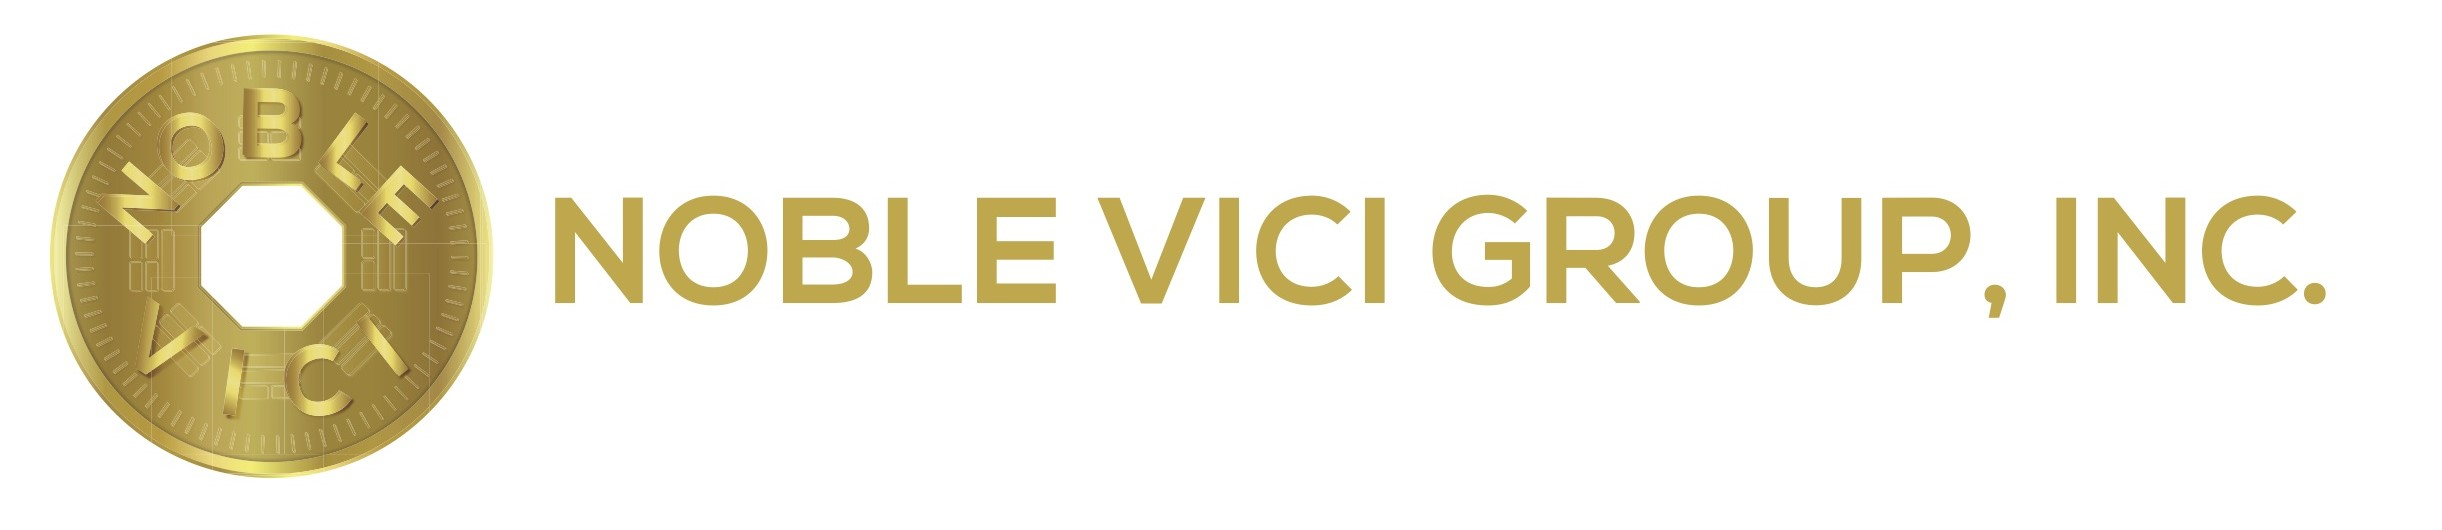 Noble Vici Group Inc.